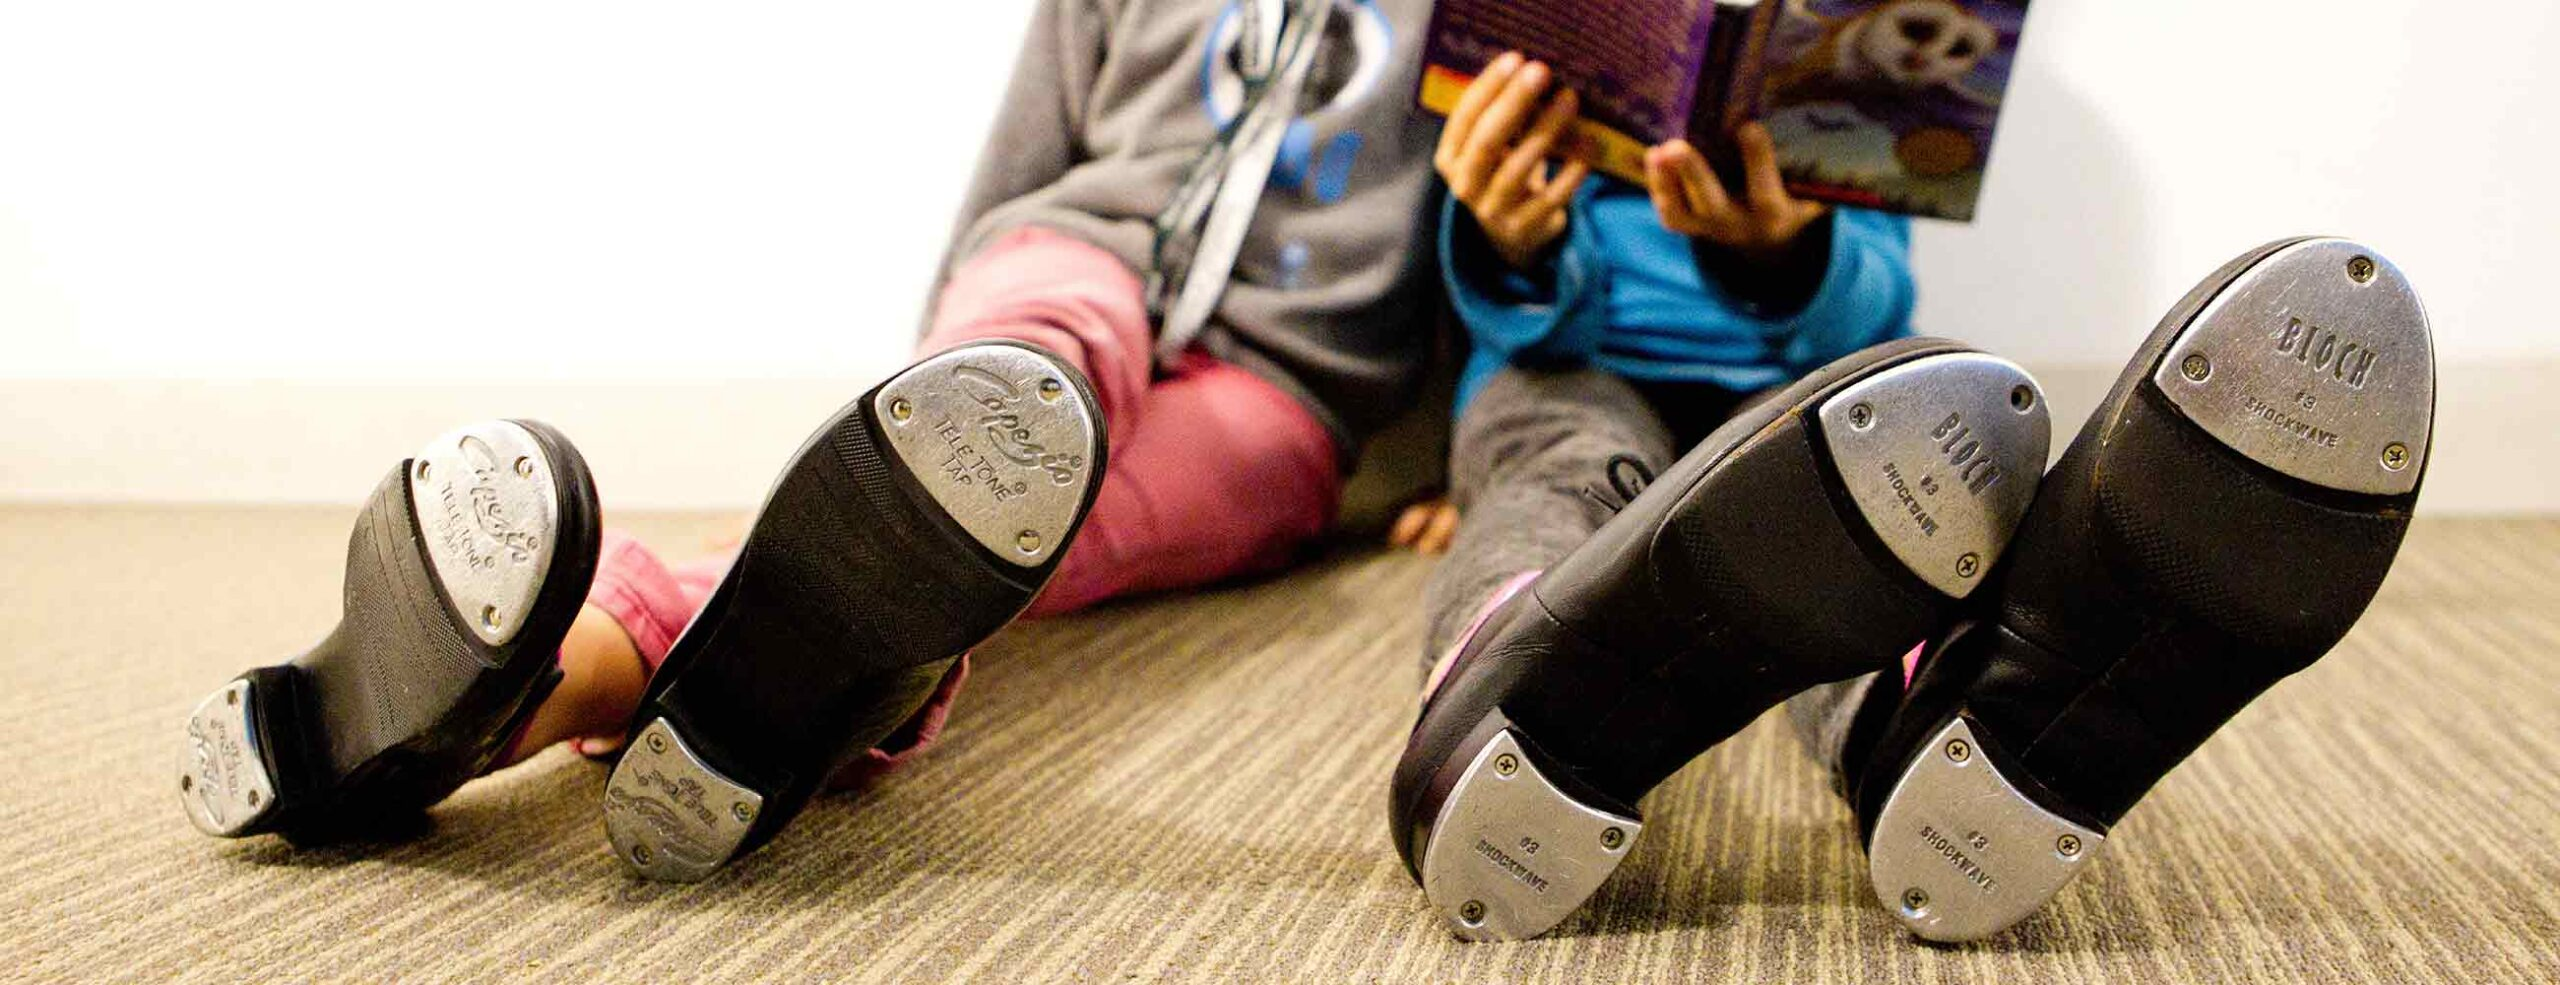 Kids sitting on floor with tap shoes visible